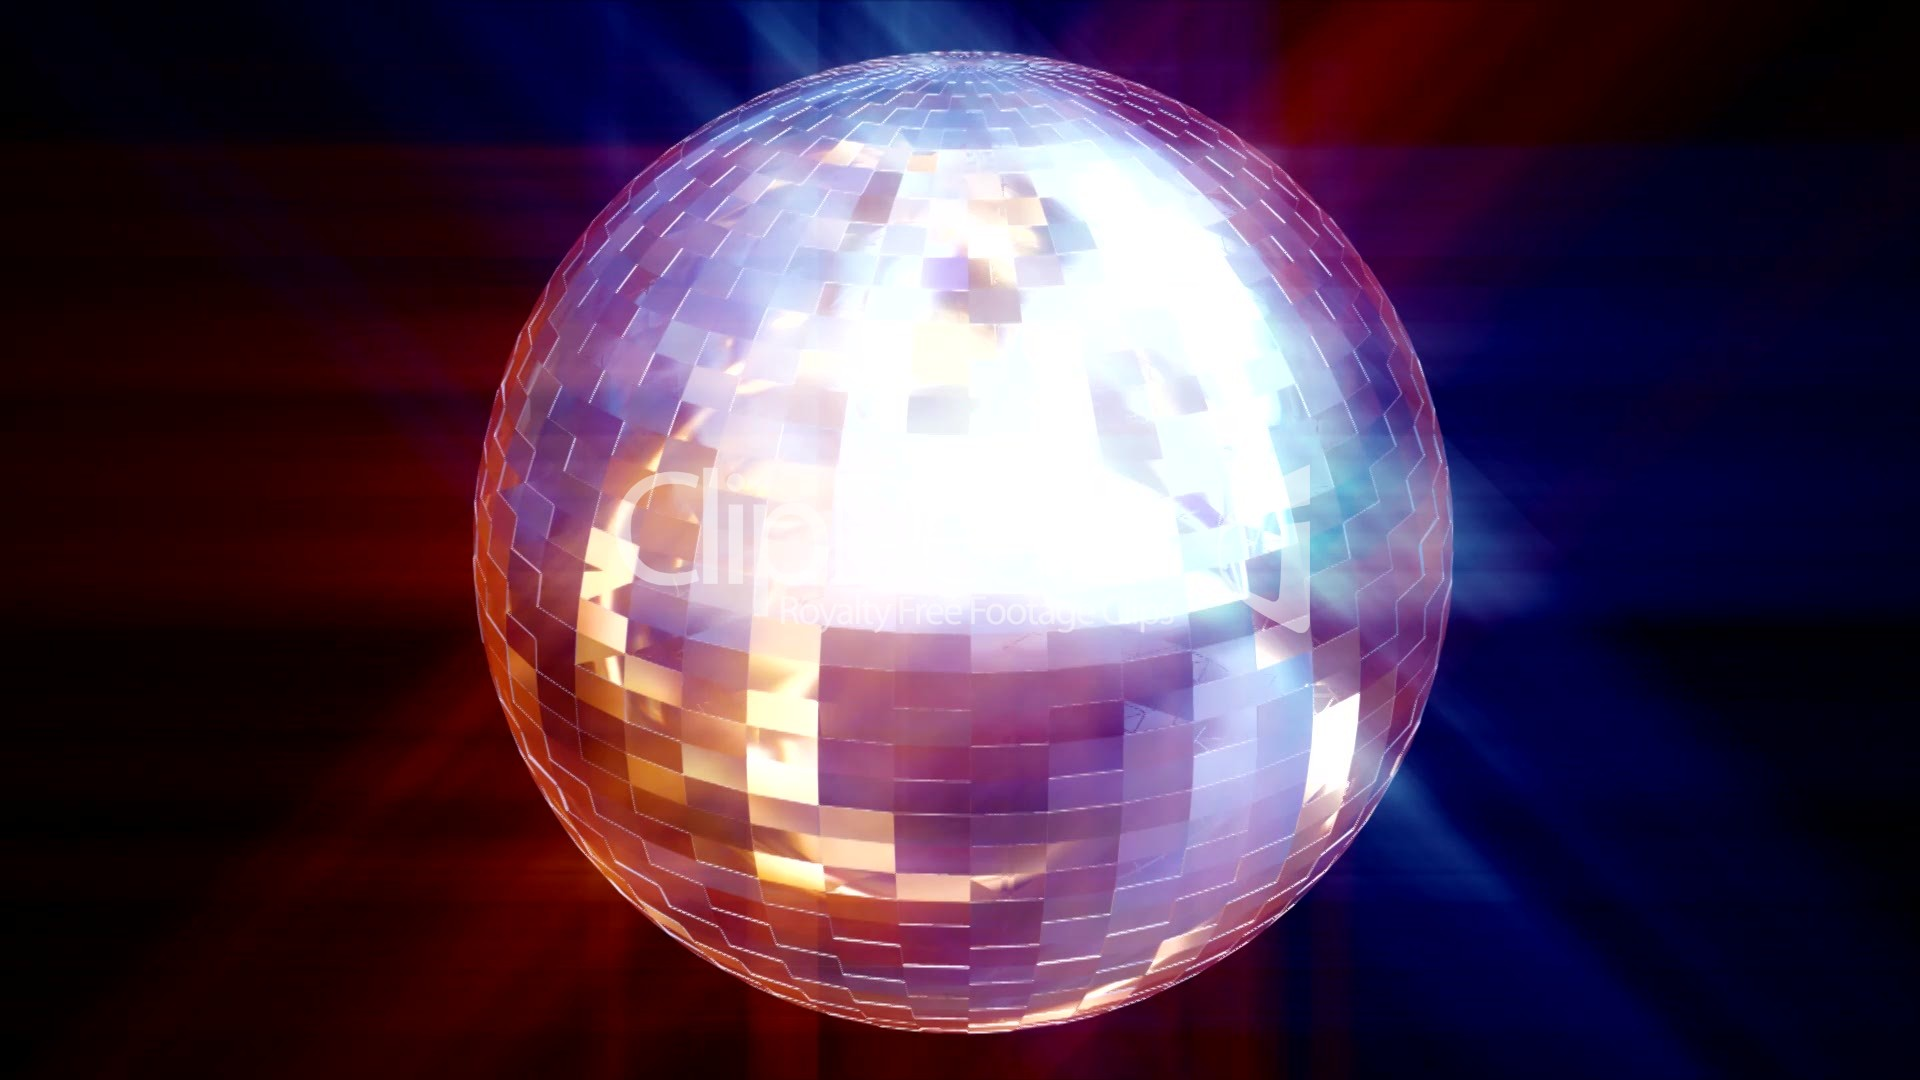 Round Mirror With Light Hd Animated Disco Ball Royalty Free Video And Stock Footage